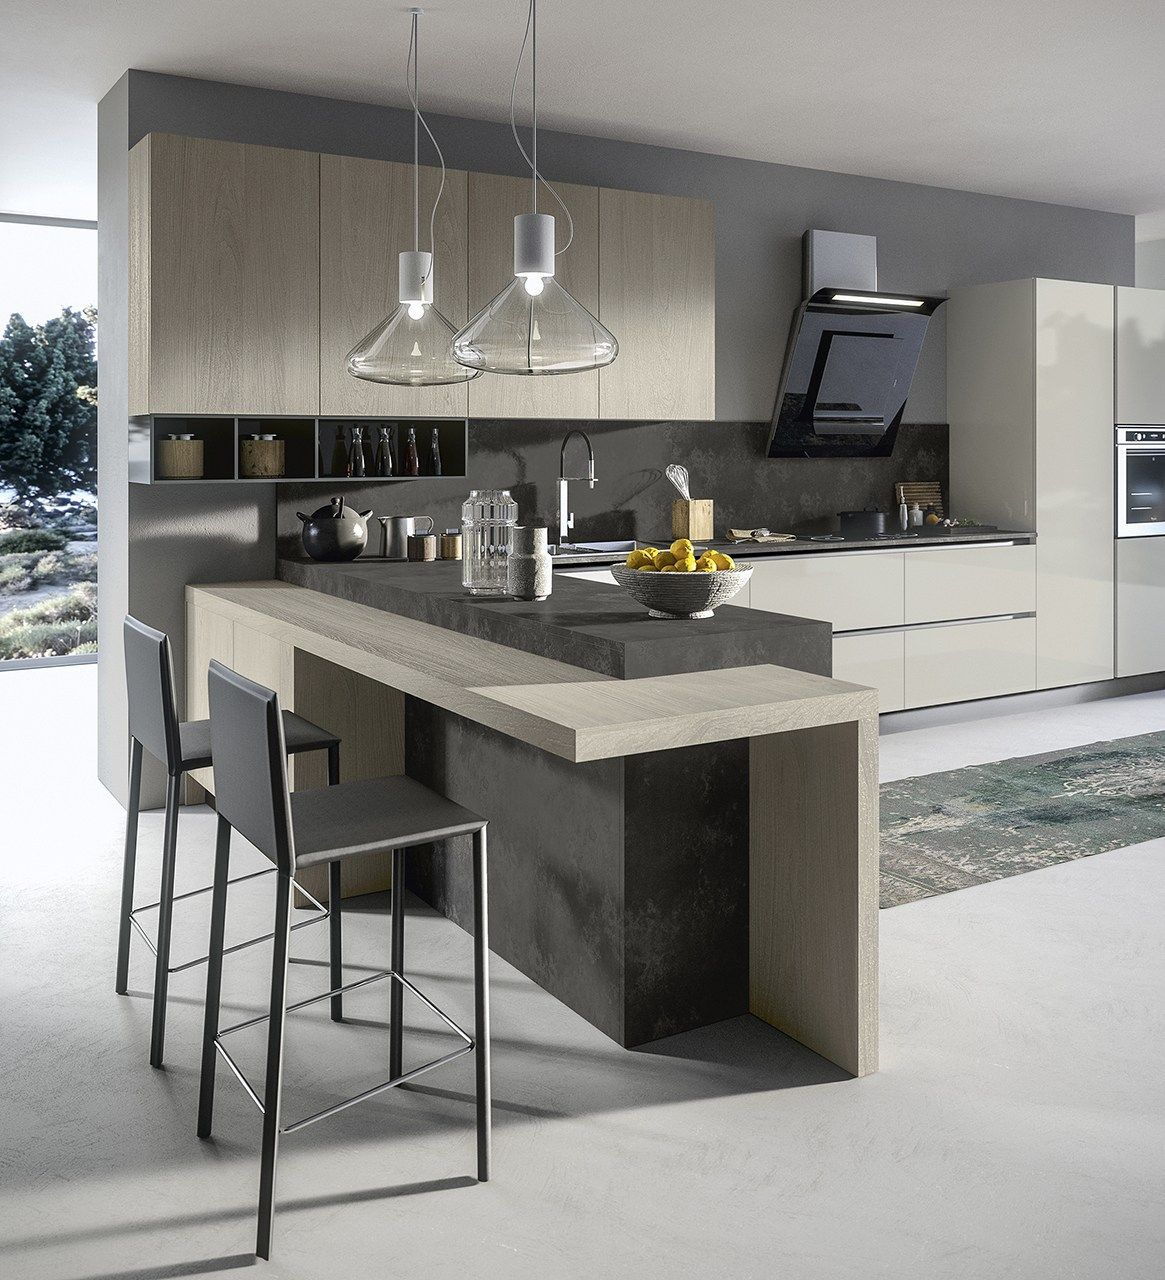 Best American Style Fitted Kitchen With Island With Handles 400 x 300